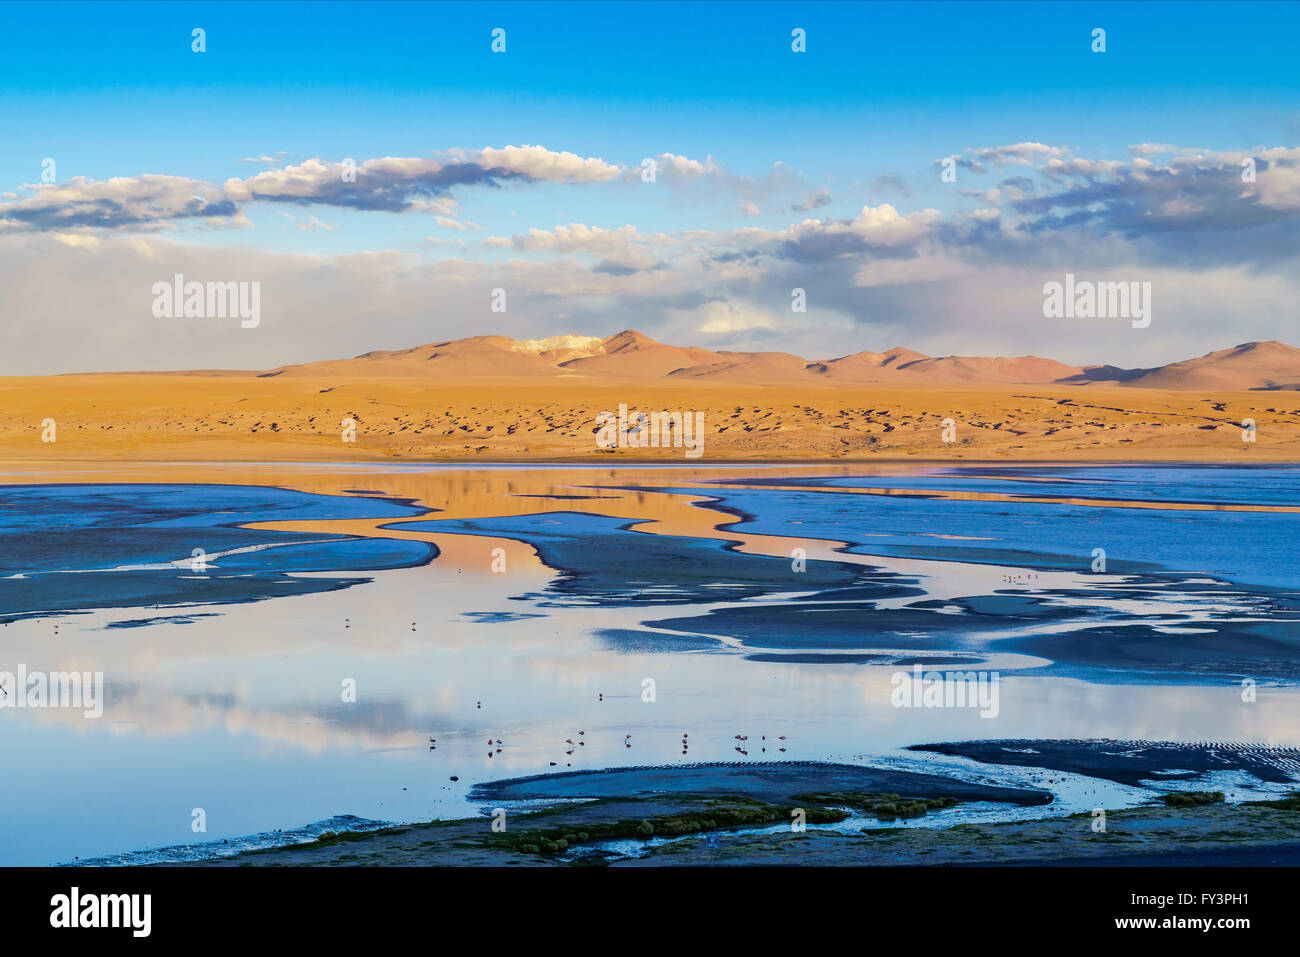 View of laguna in the evening at The Reserva Nacional De Fauna Andina Edina Eduardo Avaroa, Potasi, Bolivia - Stock Image